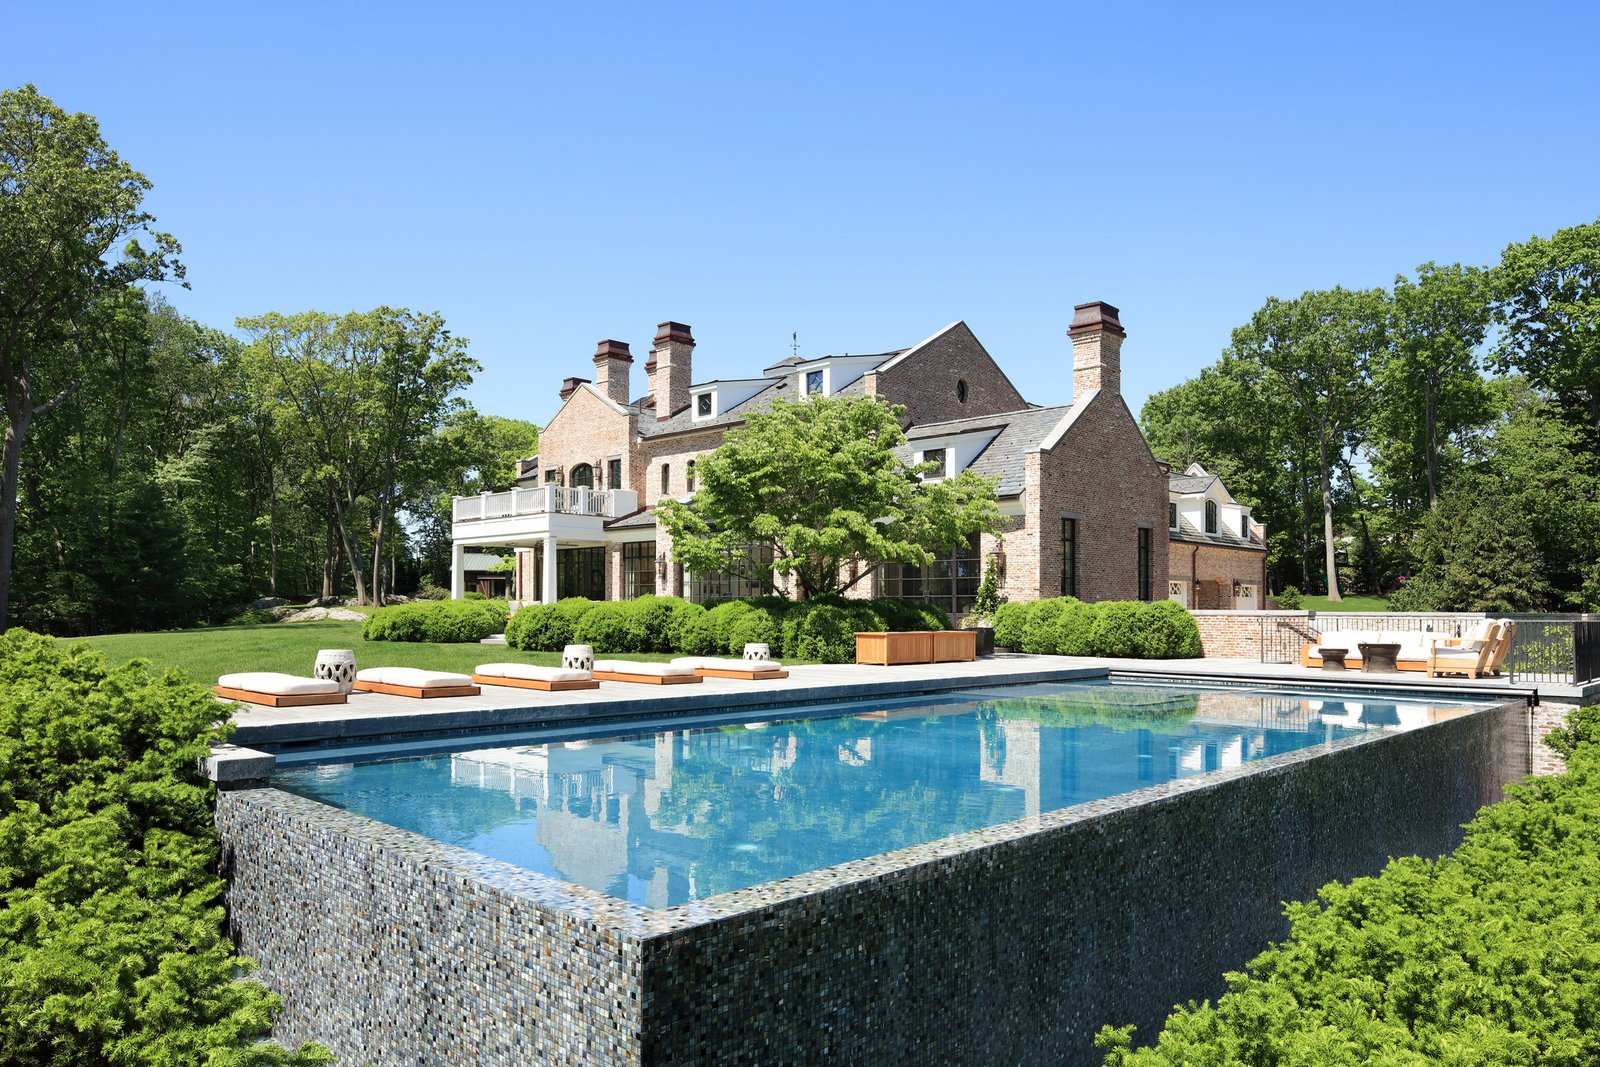 Modern home with Outdoor, Grass, Back Yard, Shrubs, Large Pools, Tubs, Shower, and Trees. Photo 5 of A Richard Landry-Designed Home in Massachusetts Asks $39.5M